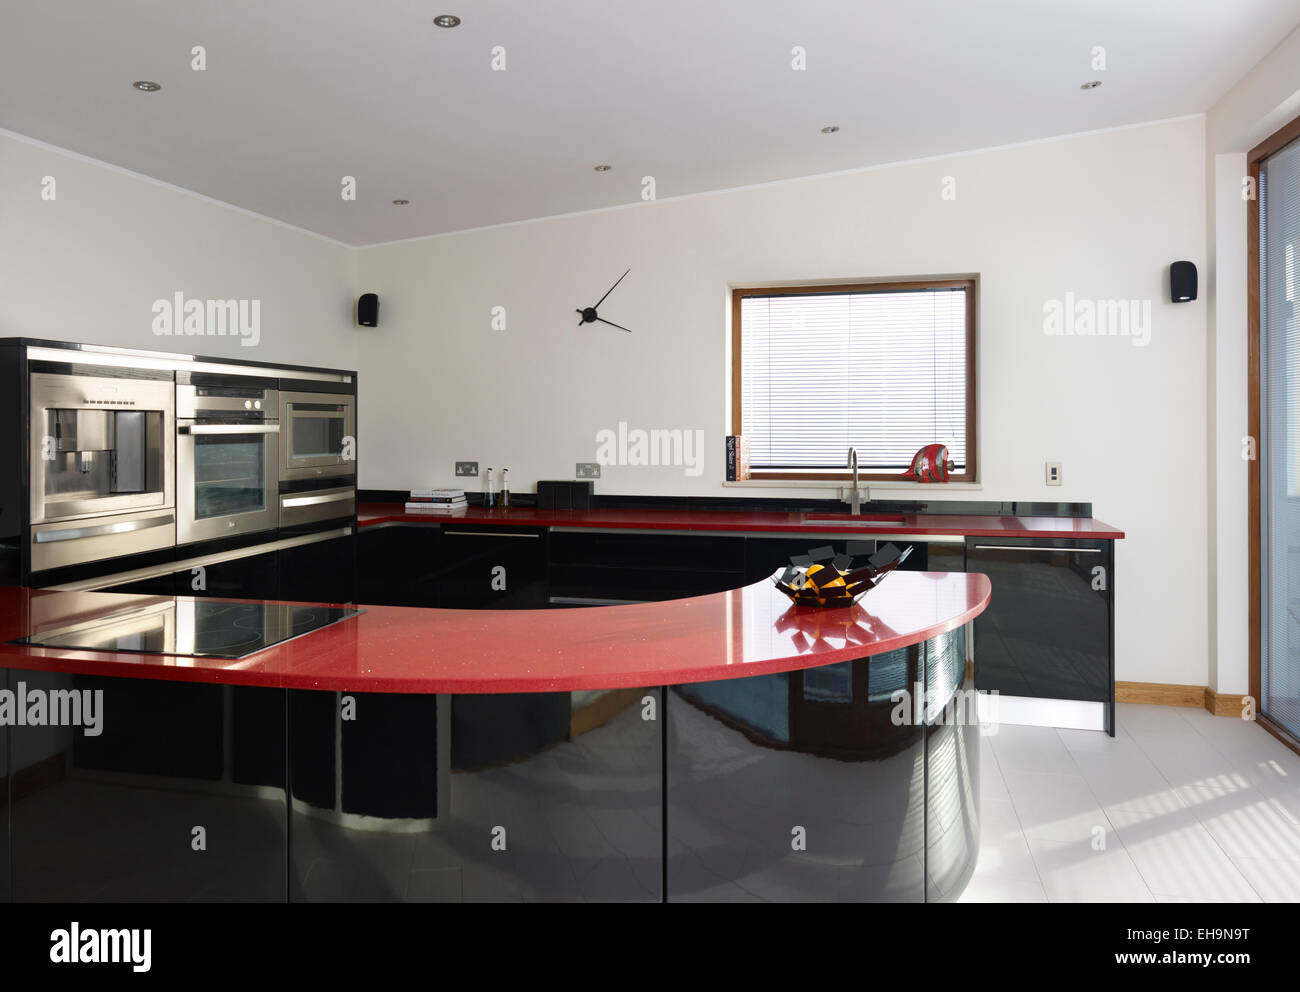 Black And Red Curved Kitchen Counter Top In Modern Kitchen Of Shirley Drive  Home, UK